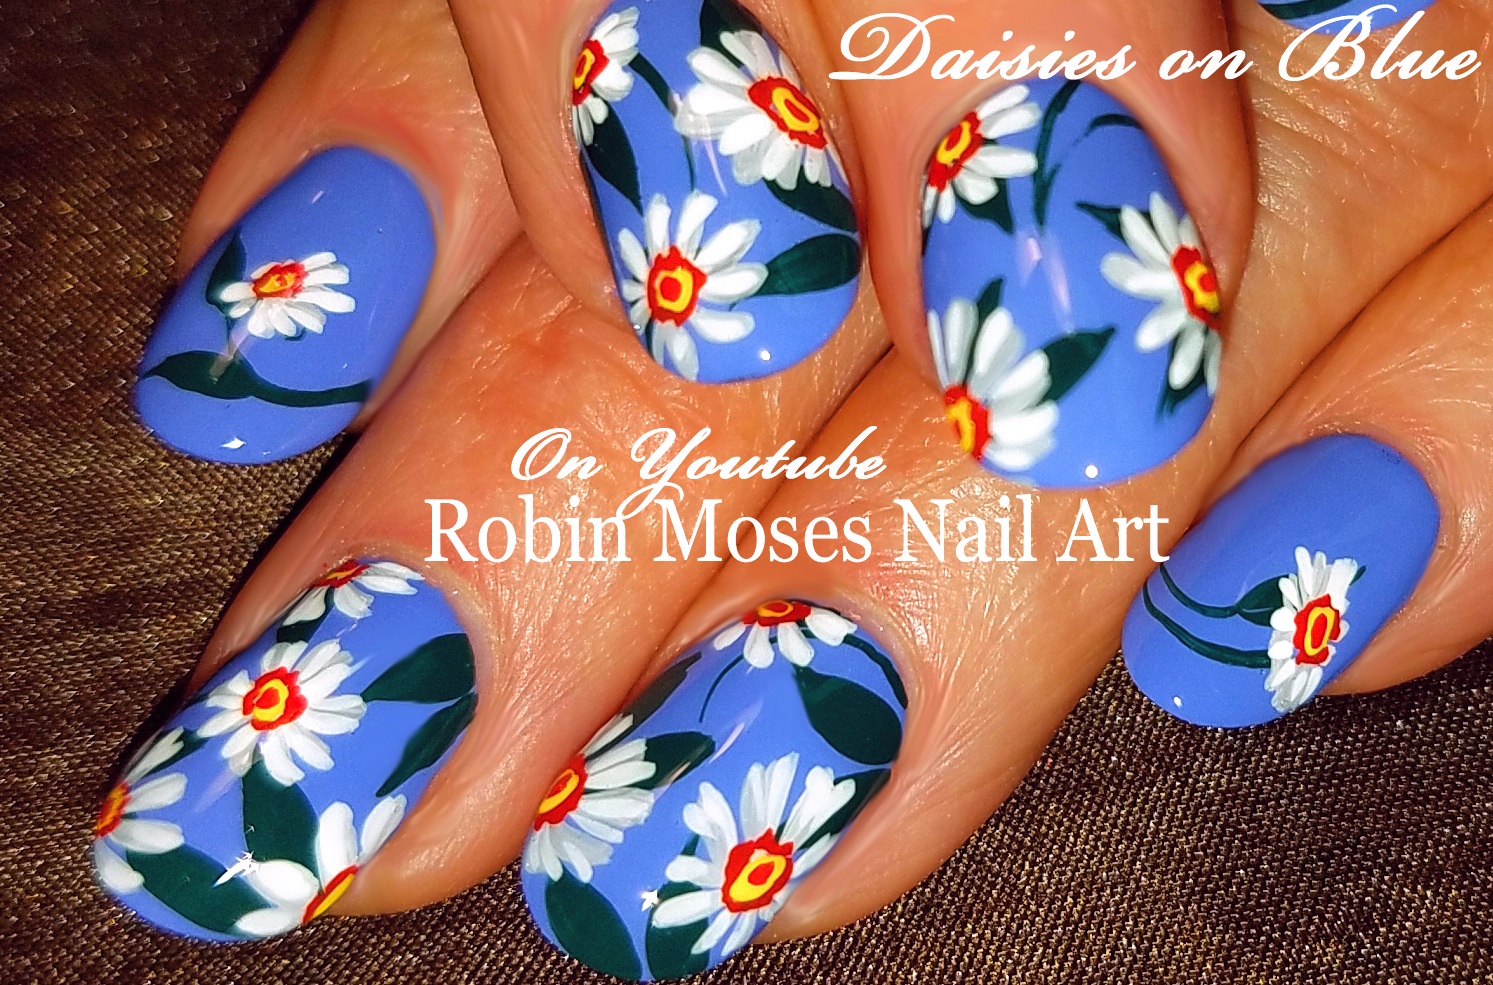 Nail Art by Robin Moses